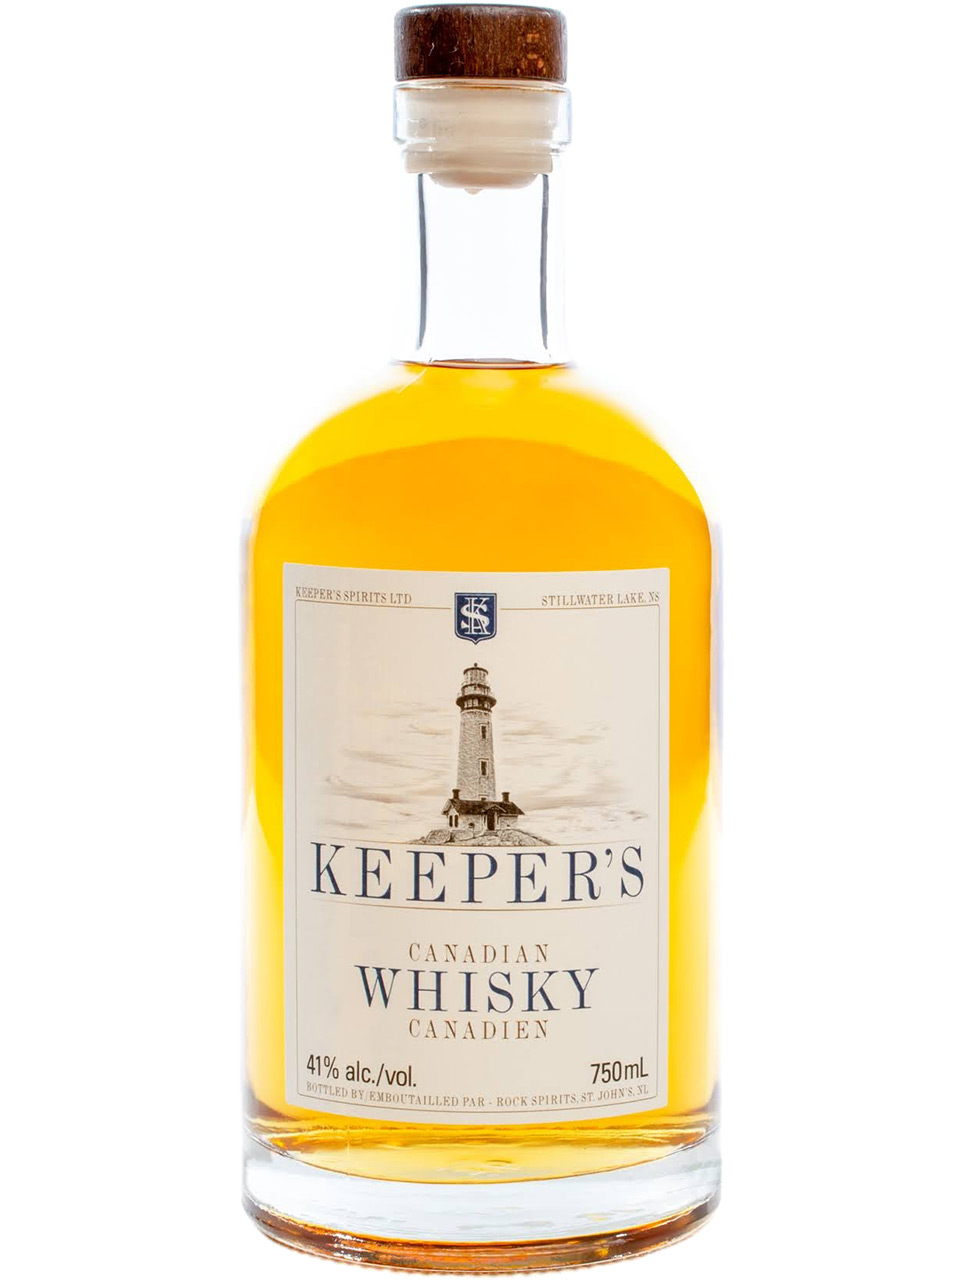 Keeper's Canadian Whisky